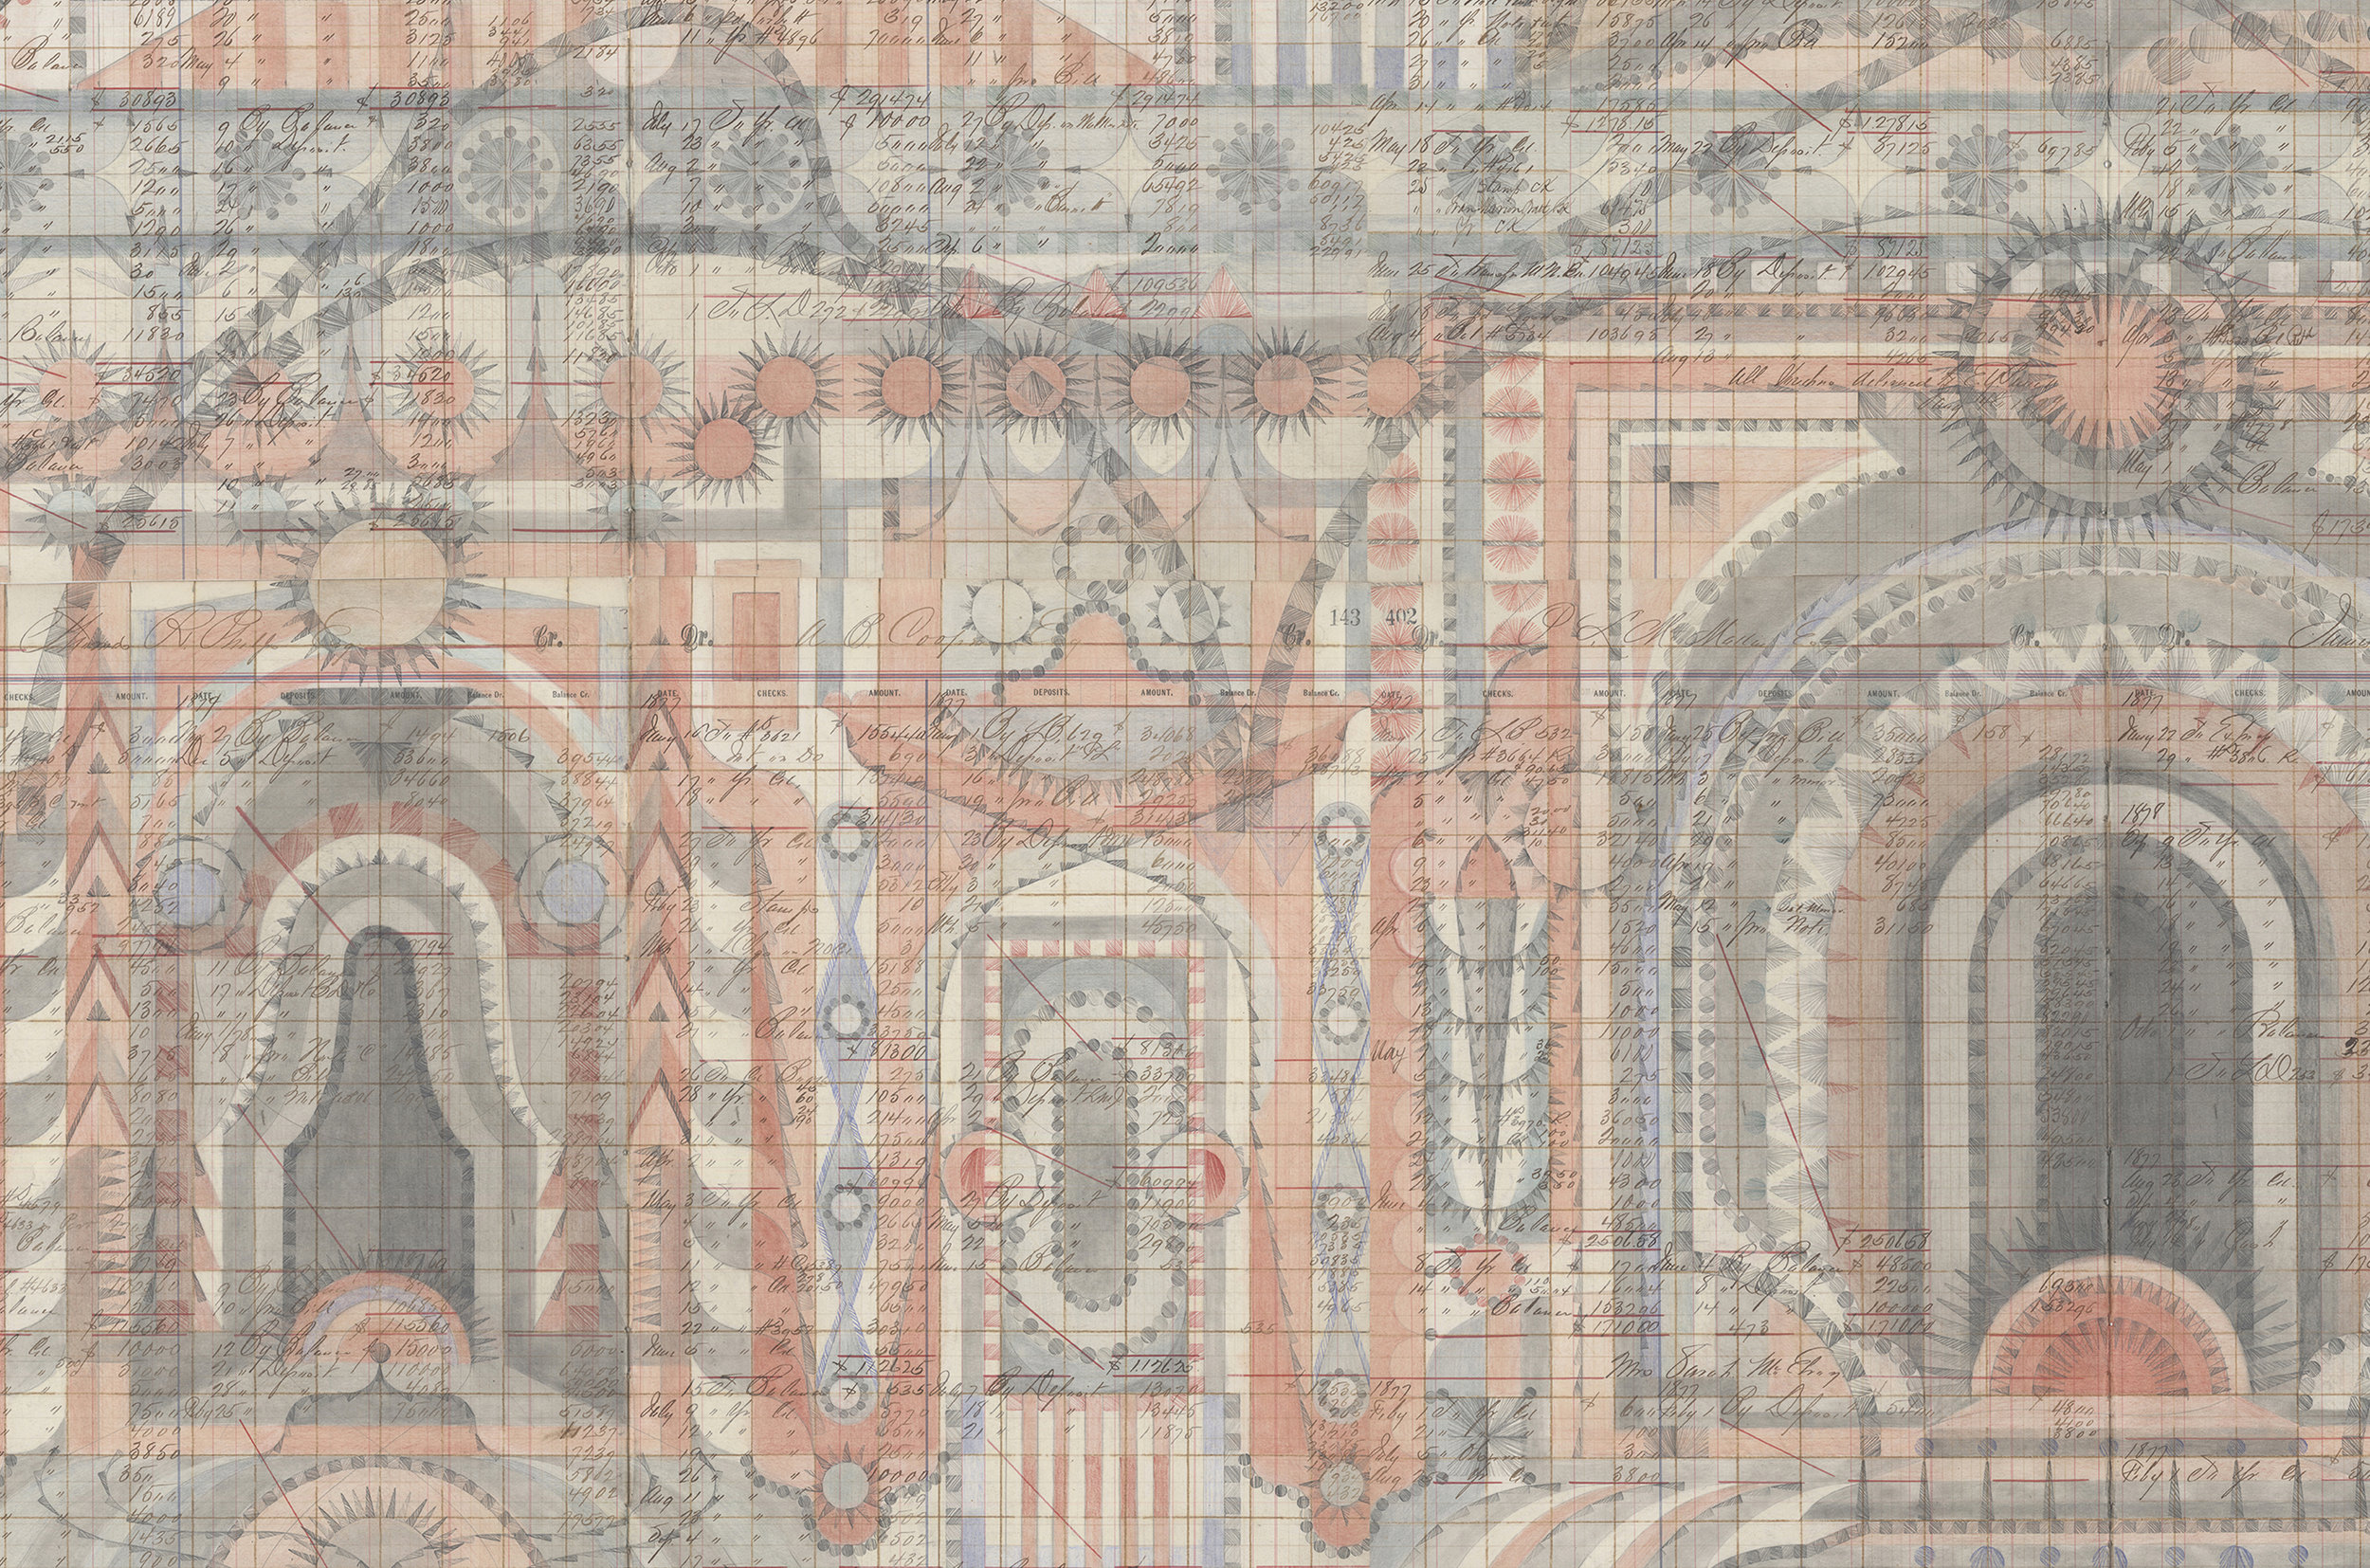 DETAIL of Fort, Colored Pencil and Graphite on Antique Ledger Book Pages. 75 x 71 inches